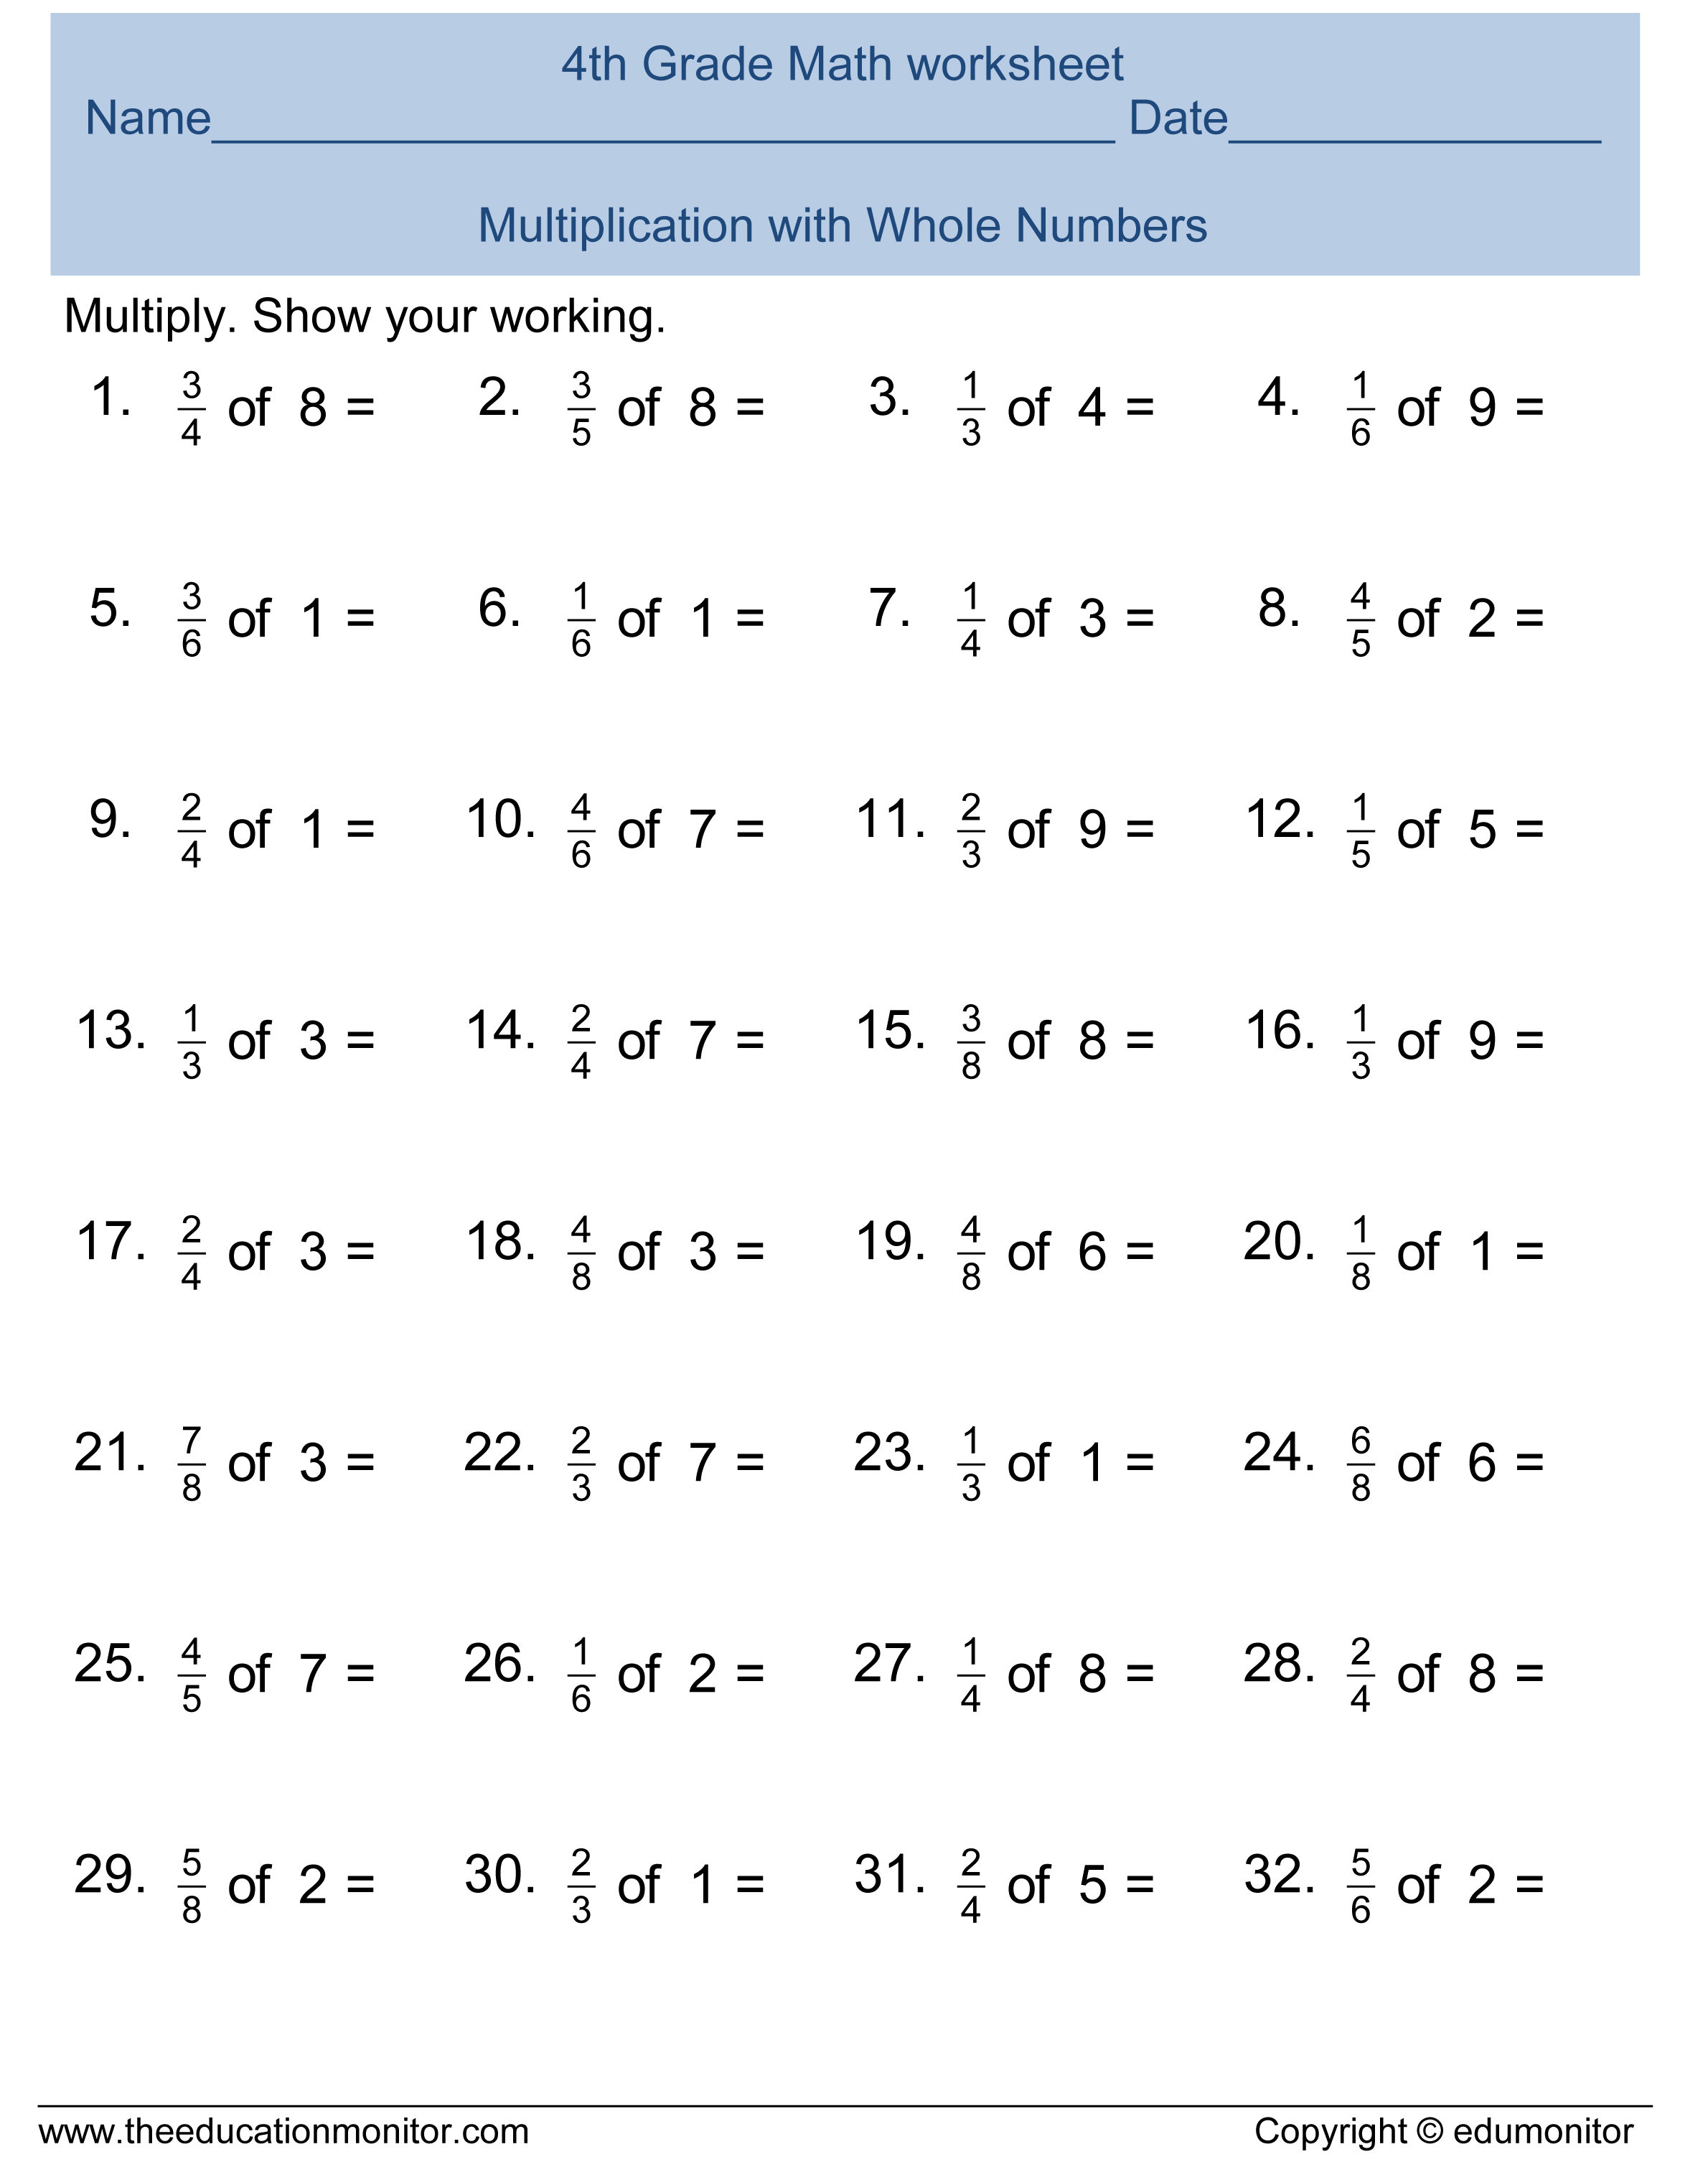 math worksheet : free printable worksheets for 4th grade : Math Printable Worksheets 4th Grade